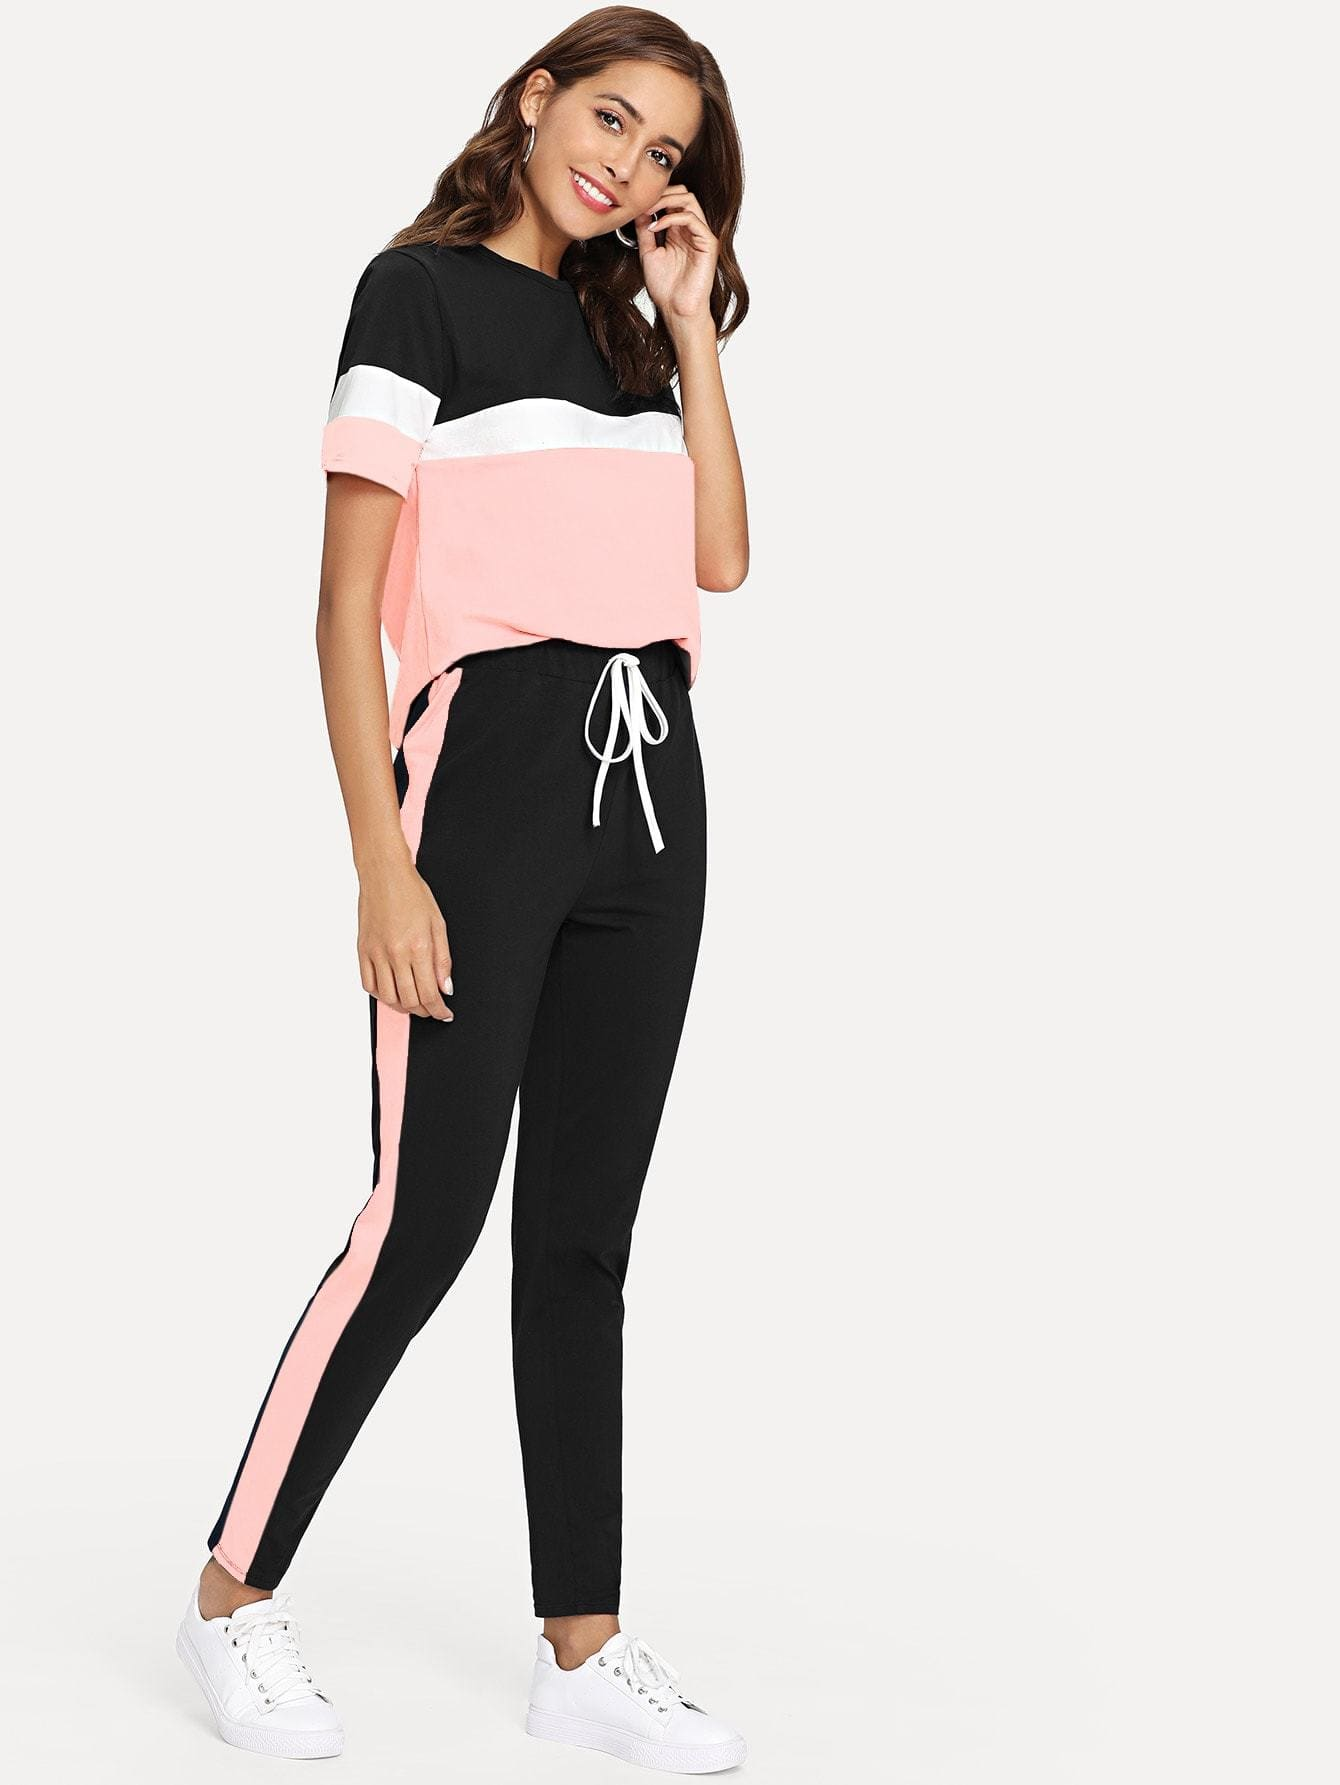 Color Block Tee & Drawstring Tape Pants Set - Sportsuit